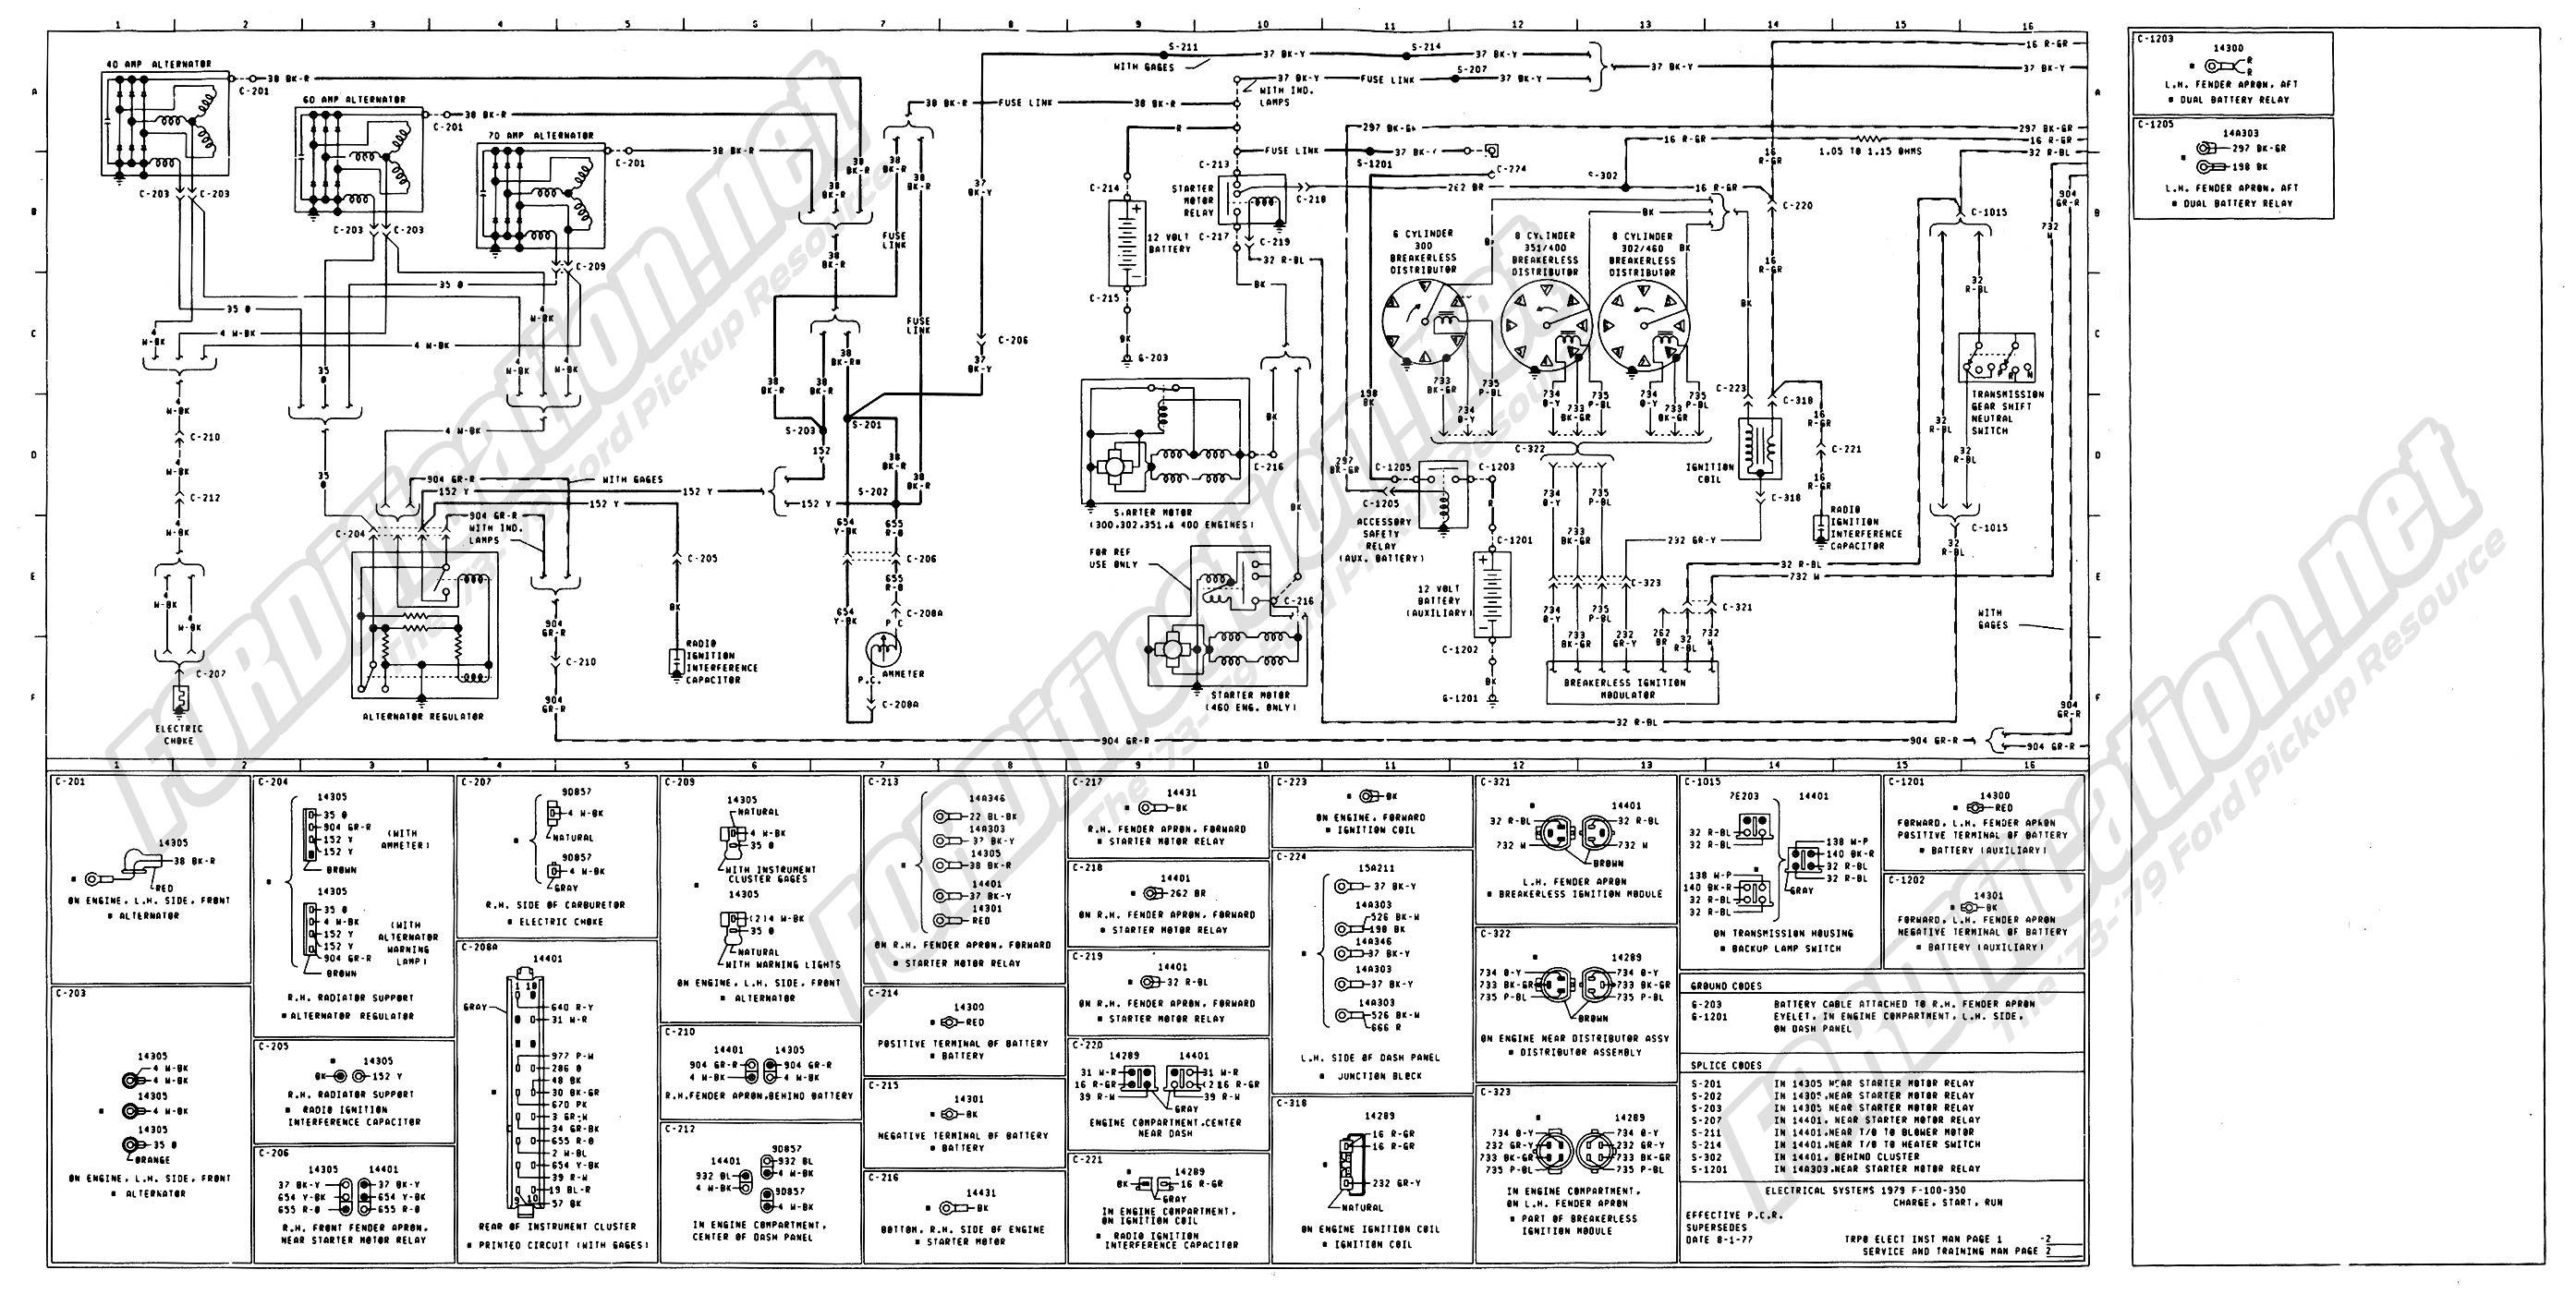 1978 ford f150 lariat wiring diagram 2 13 wohnungzumieten de \u20221973 1979 ford truck wiring diagrams schematics fordification net rh fordification net 1978 ford bronco wiring diagram ford ignition wiring diagram